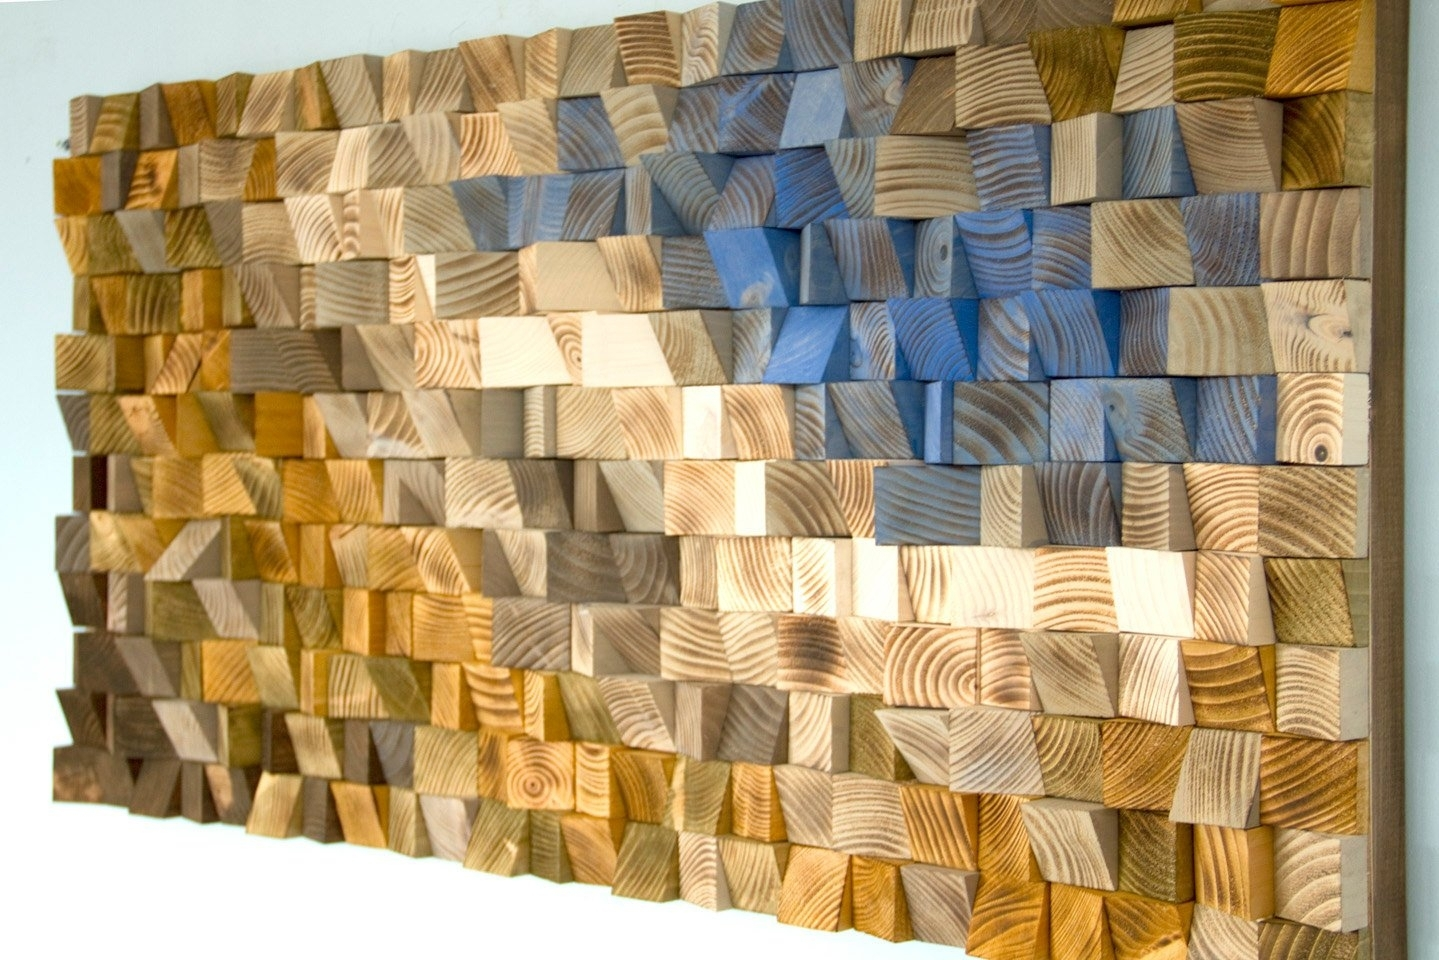 Reclaimed Wood Wall Art, Wood Mosaic, Geometric Art, Wood Wall Art Intended For Best And Newest Reclaimed Wood Wall Art (View 12 of 15)